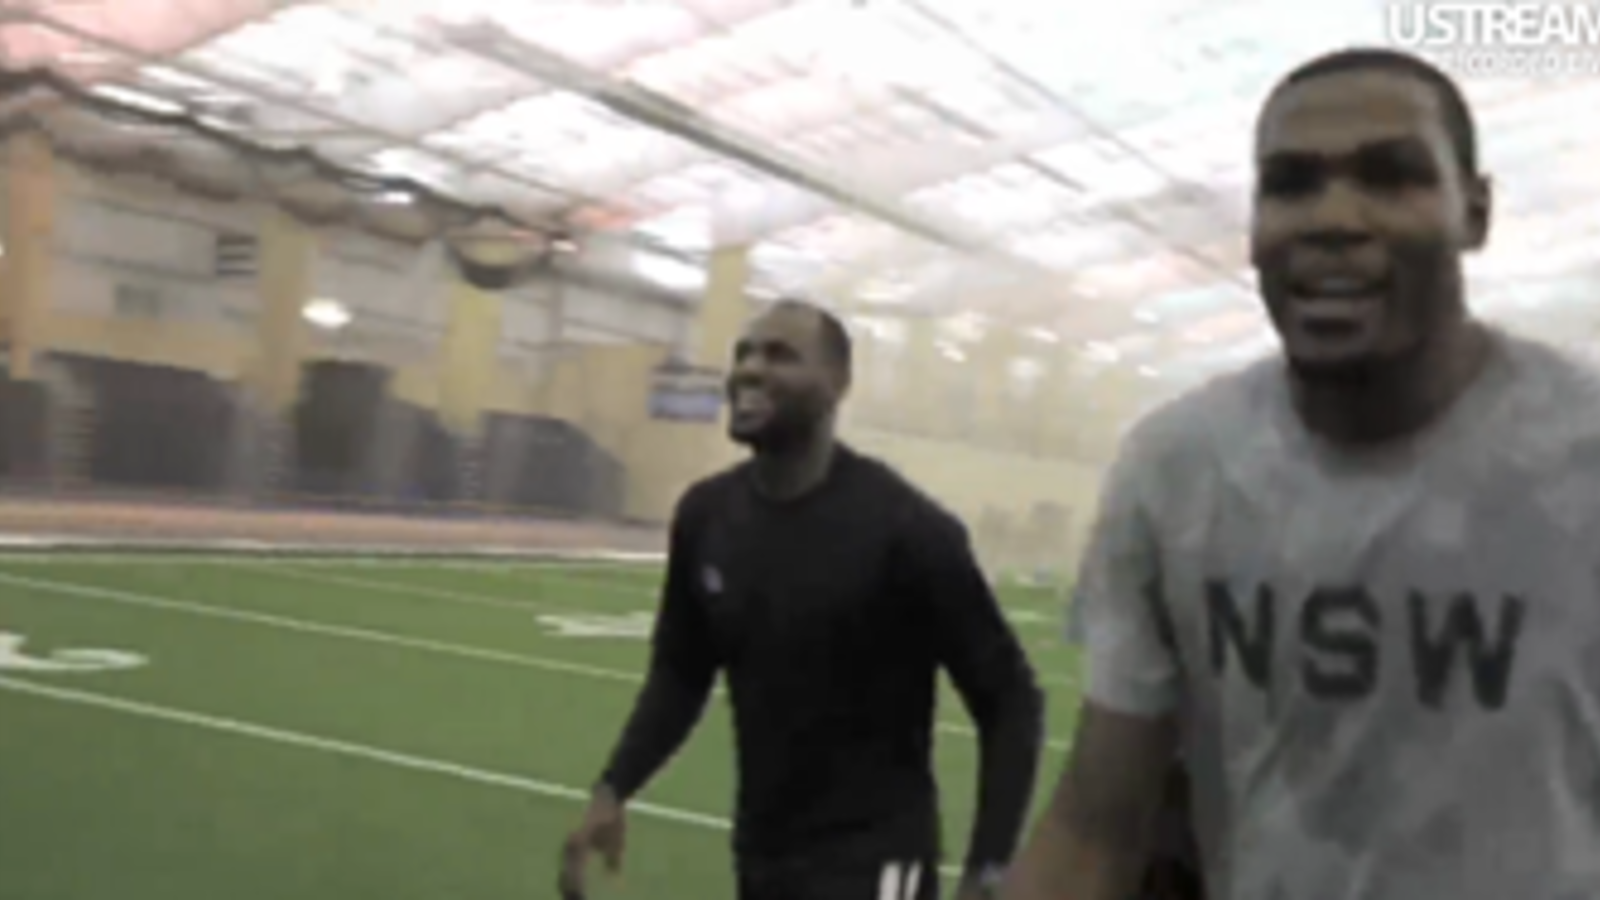 095a22f717fa LeBron James and Kevin Durant Play Flag Football Game - Nike News